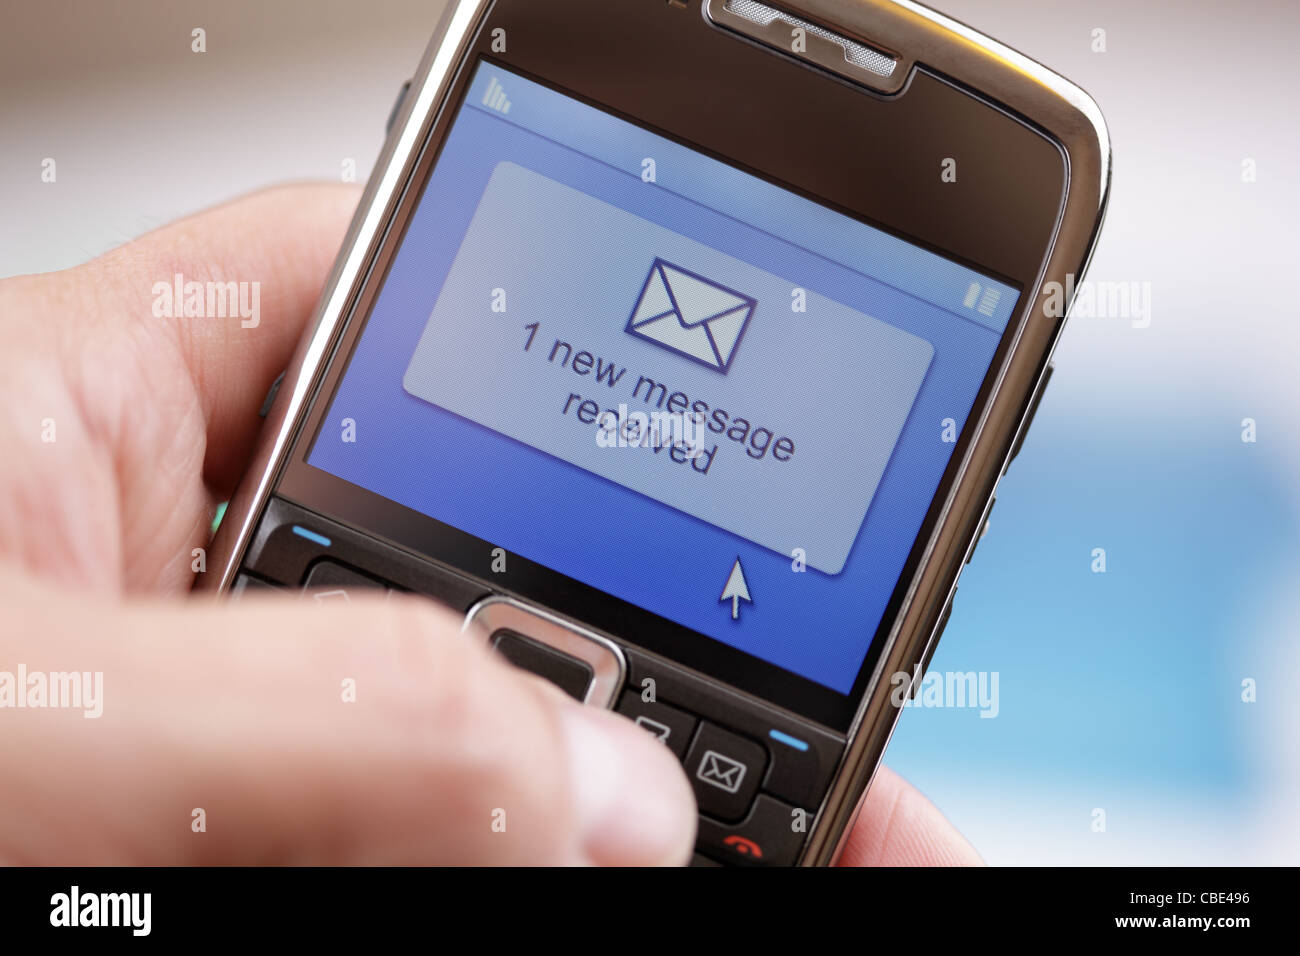 Mobile phone text message or e-mail - Stock Image